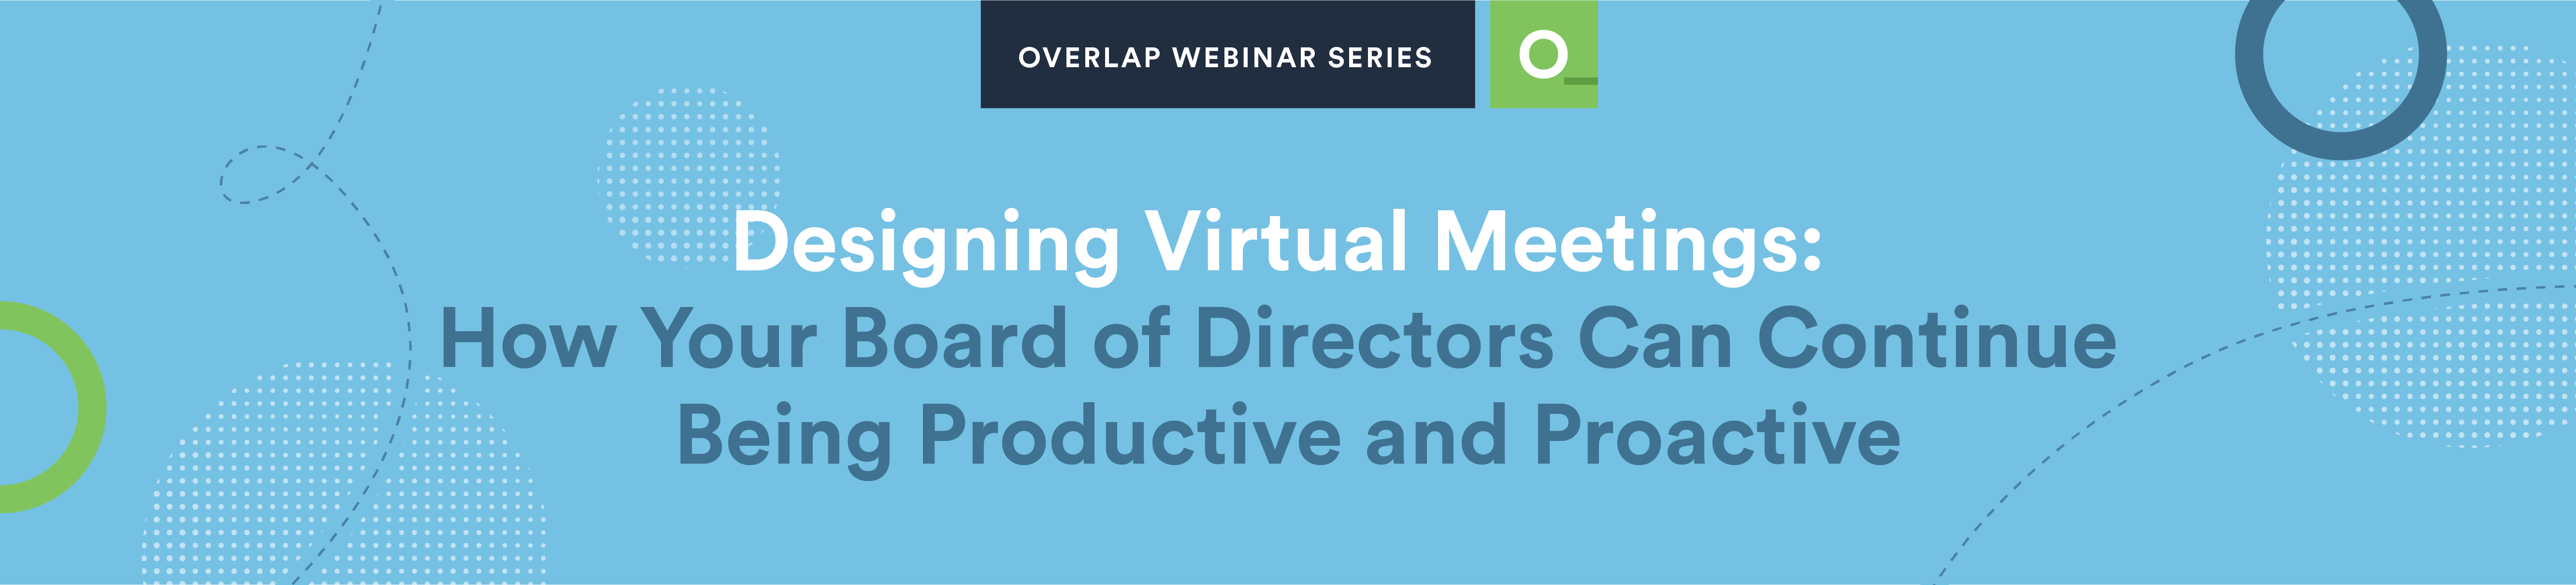 Designing Virtual Meetings: How your Board of Directors can continue being productive and proactive